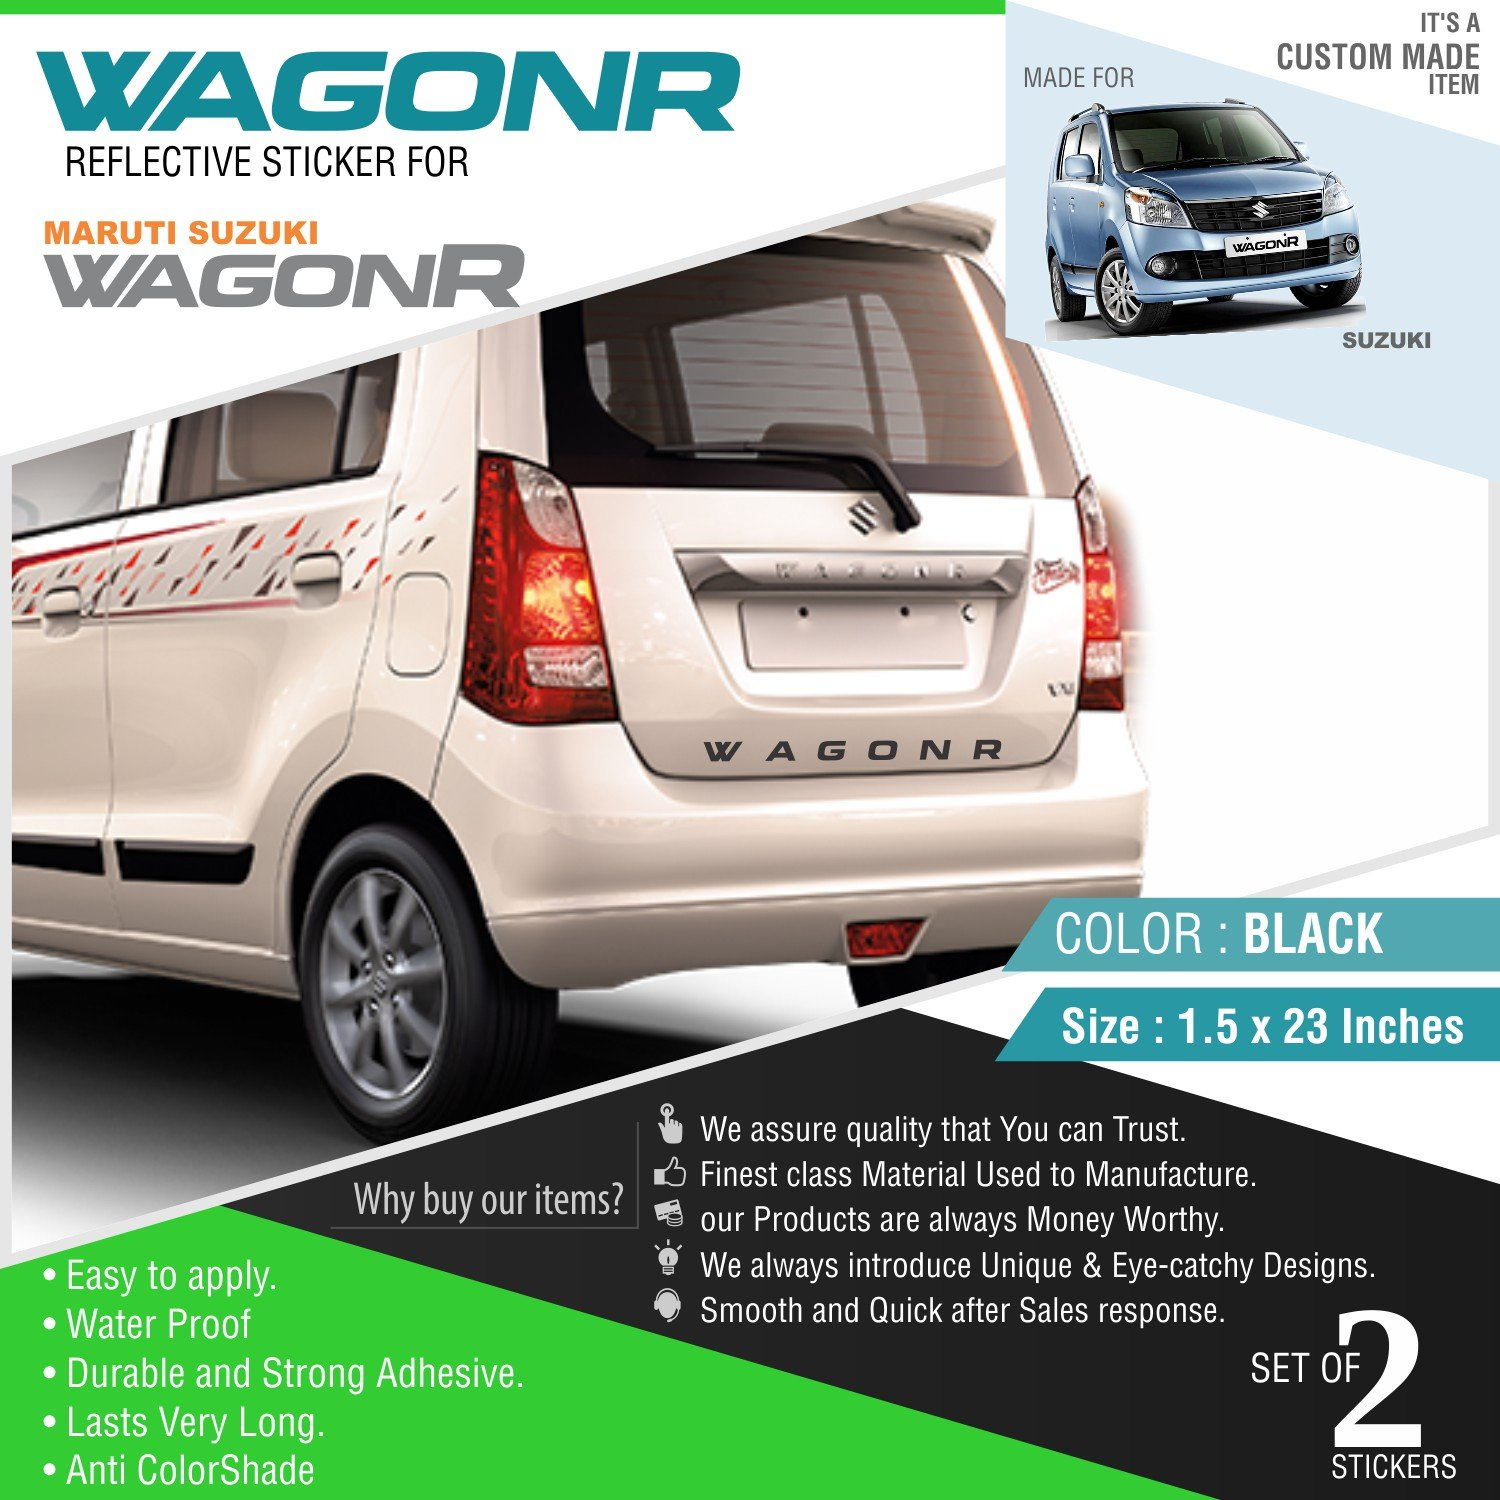 Carmetics wagonr reflective sticker for wagonr 2 black stickers for front and rear amazon in car motorbike